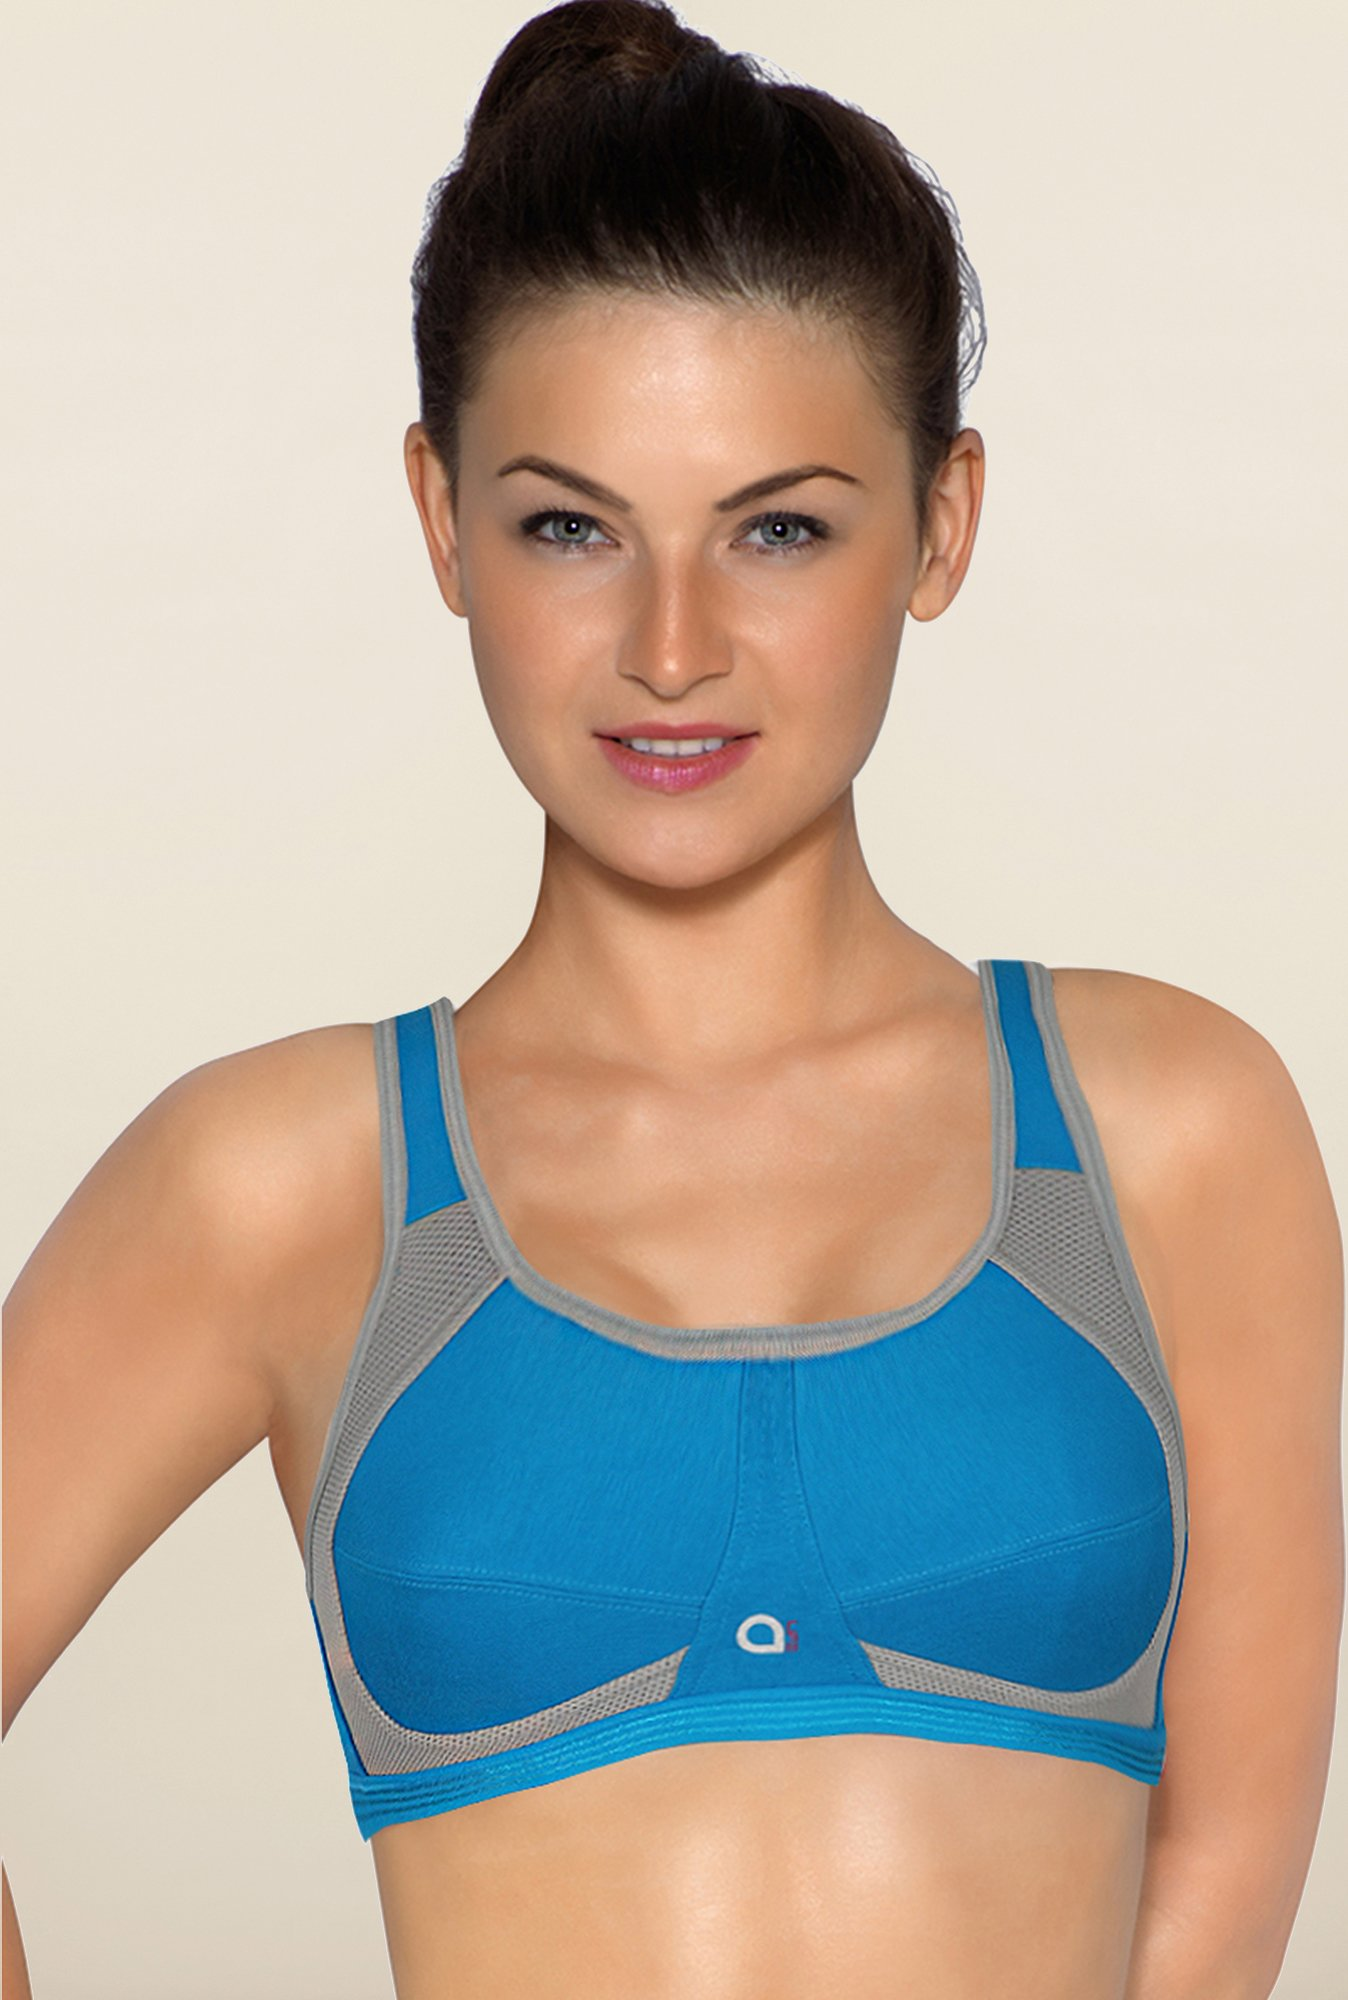 Amante Sea Blue Sports Bra